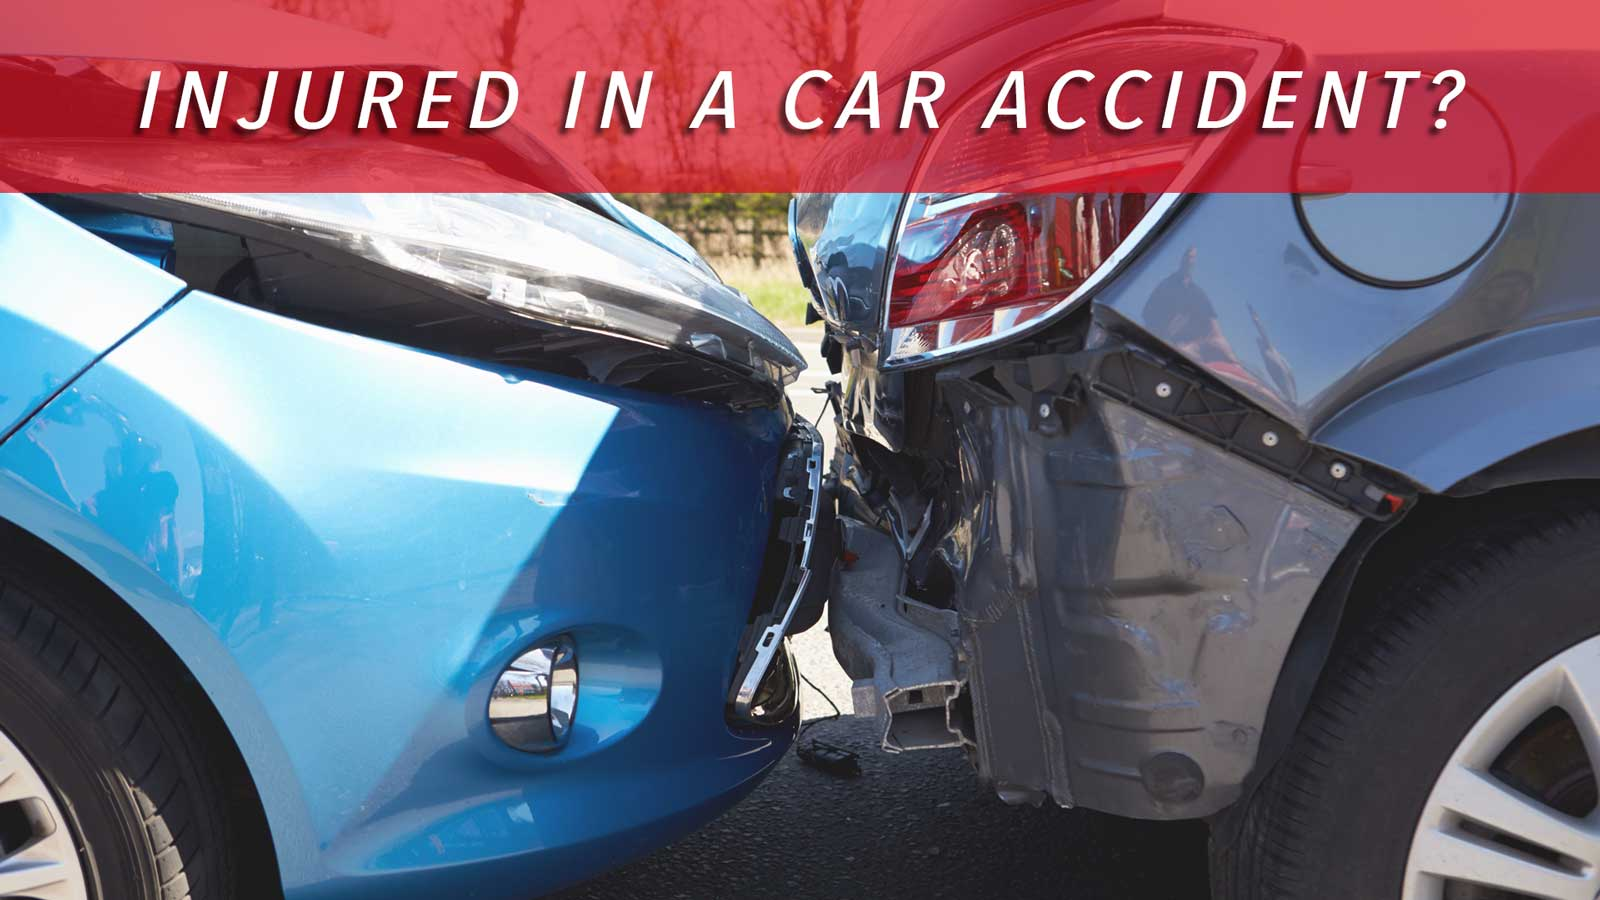 Injured in a car accident?